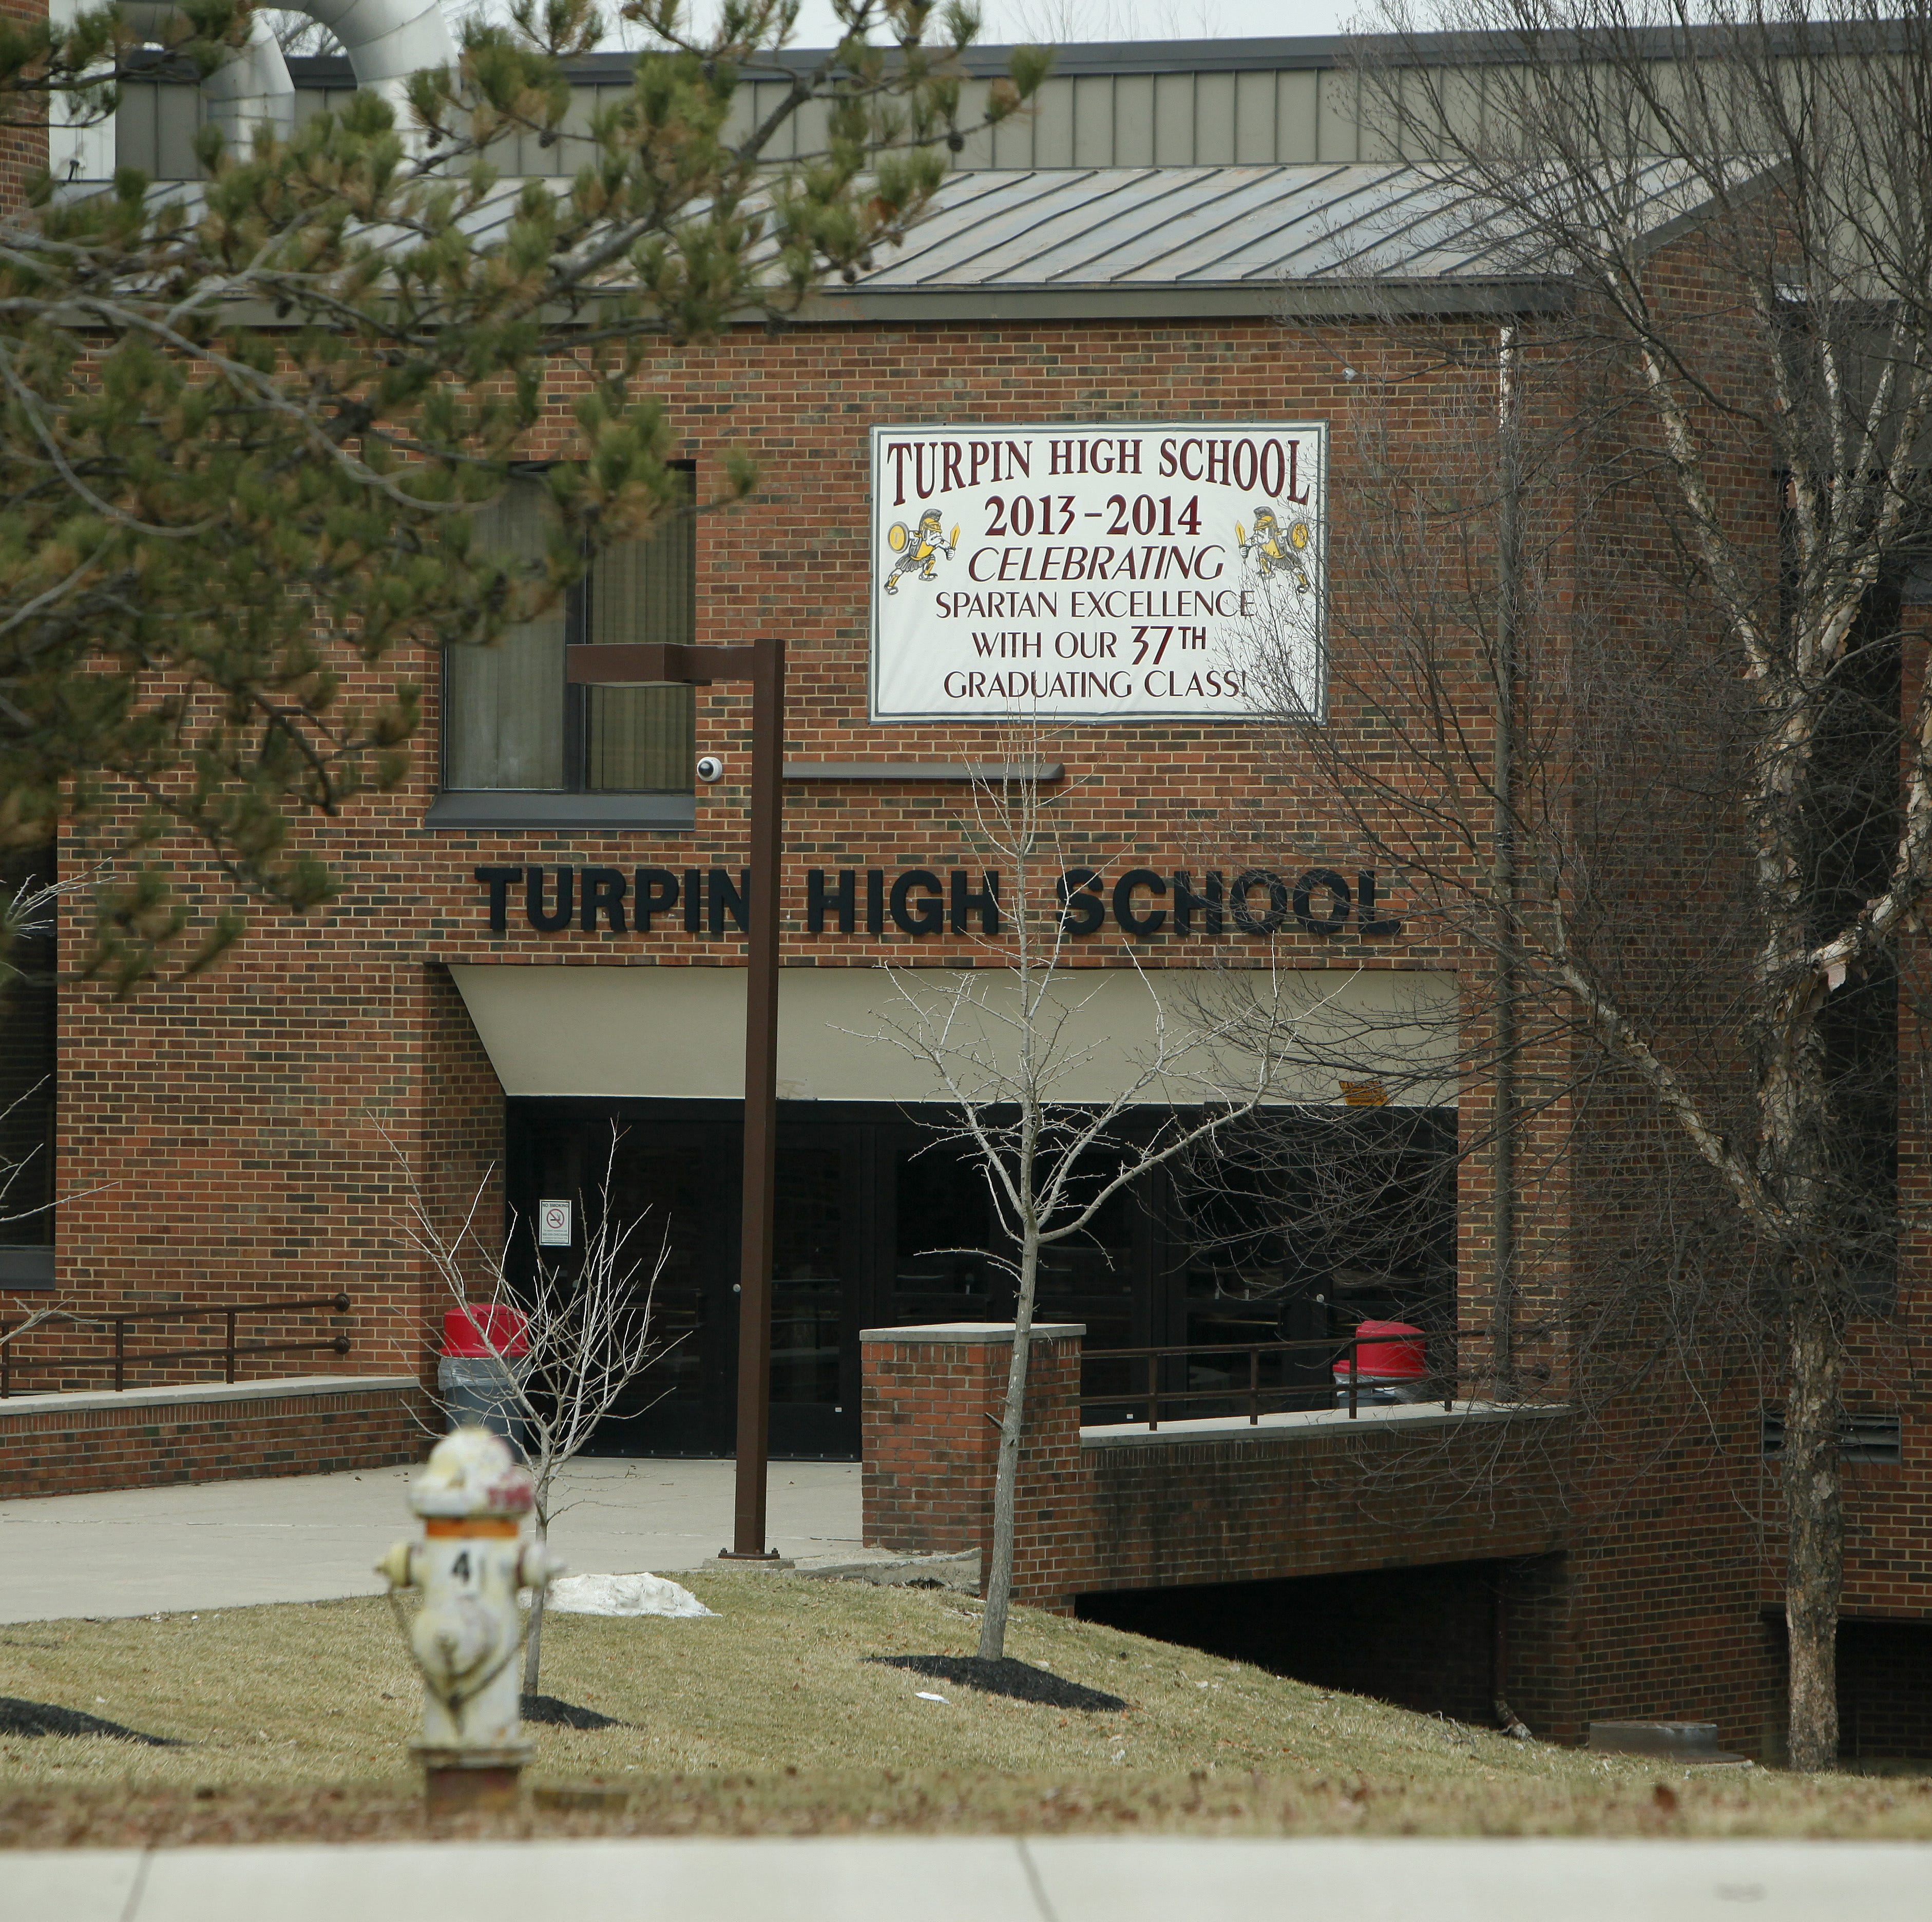 'Be available and hug them': Turpin High School, community copes with two student suicides